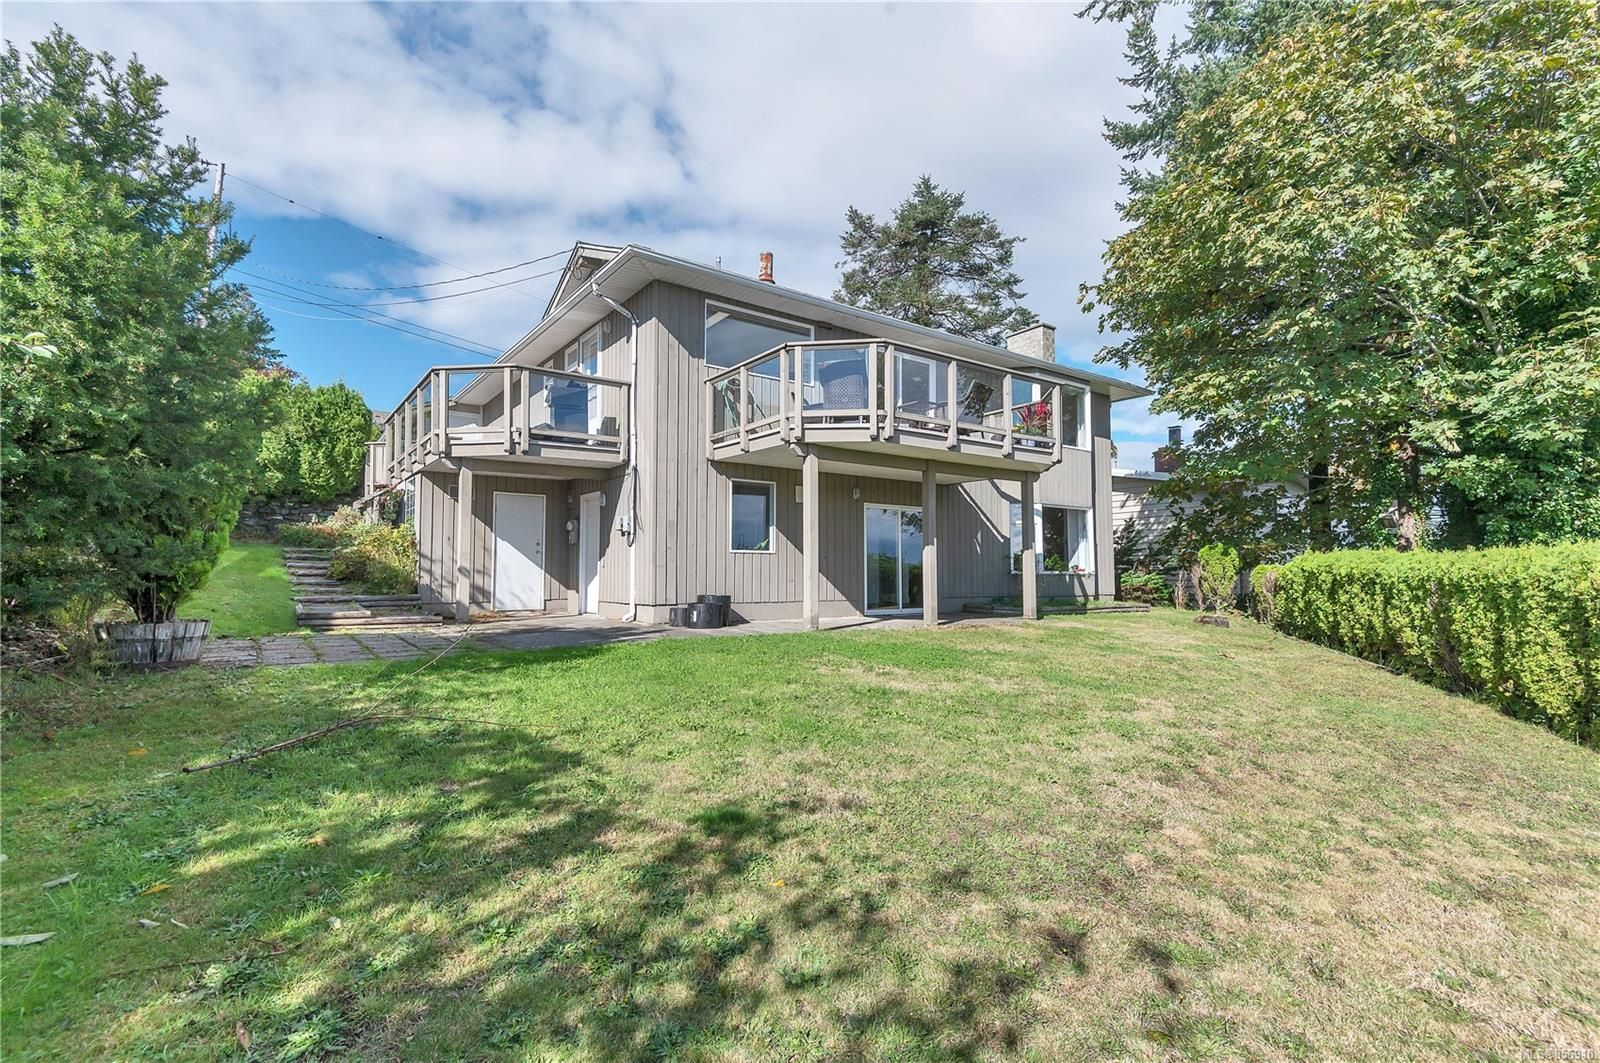 Photo 2: Photos: 215 S Alder St in : CR Campbell River Central House for sale (Campbell River)  : MLS®# 856910